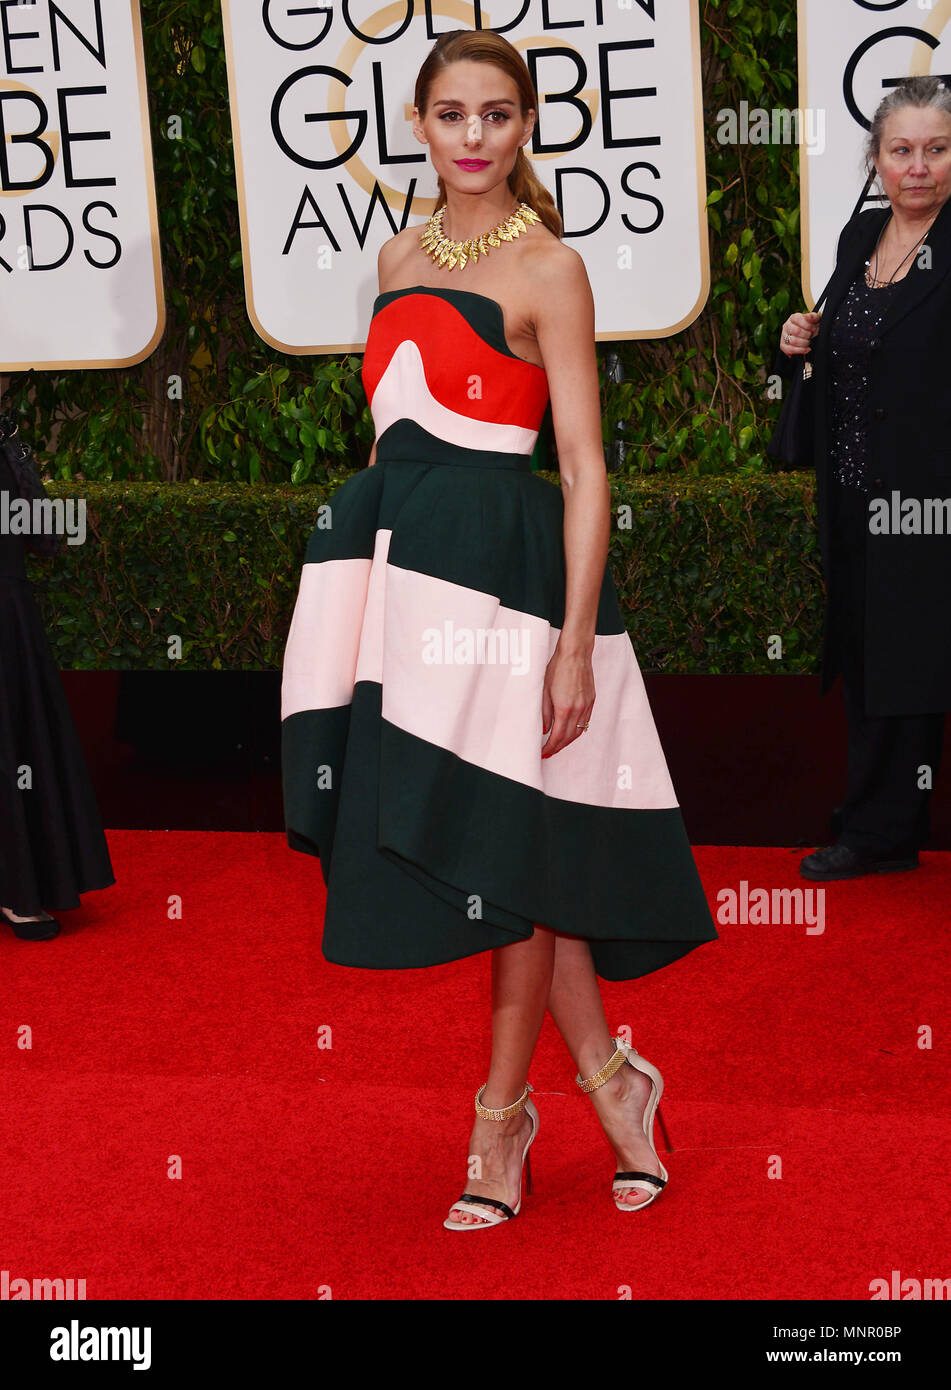 0581d62056 Olivia Palermo 470 at the 2016 Golden Globe Awards at the Beverly Hilton in  Los Angeles